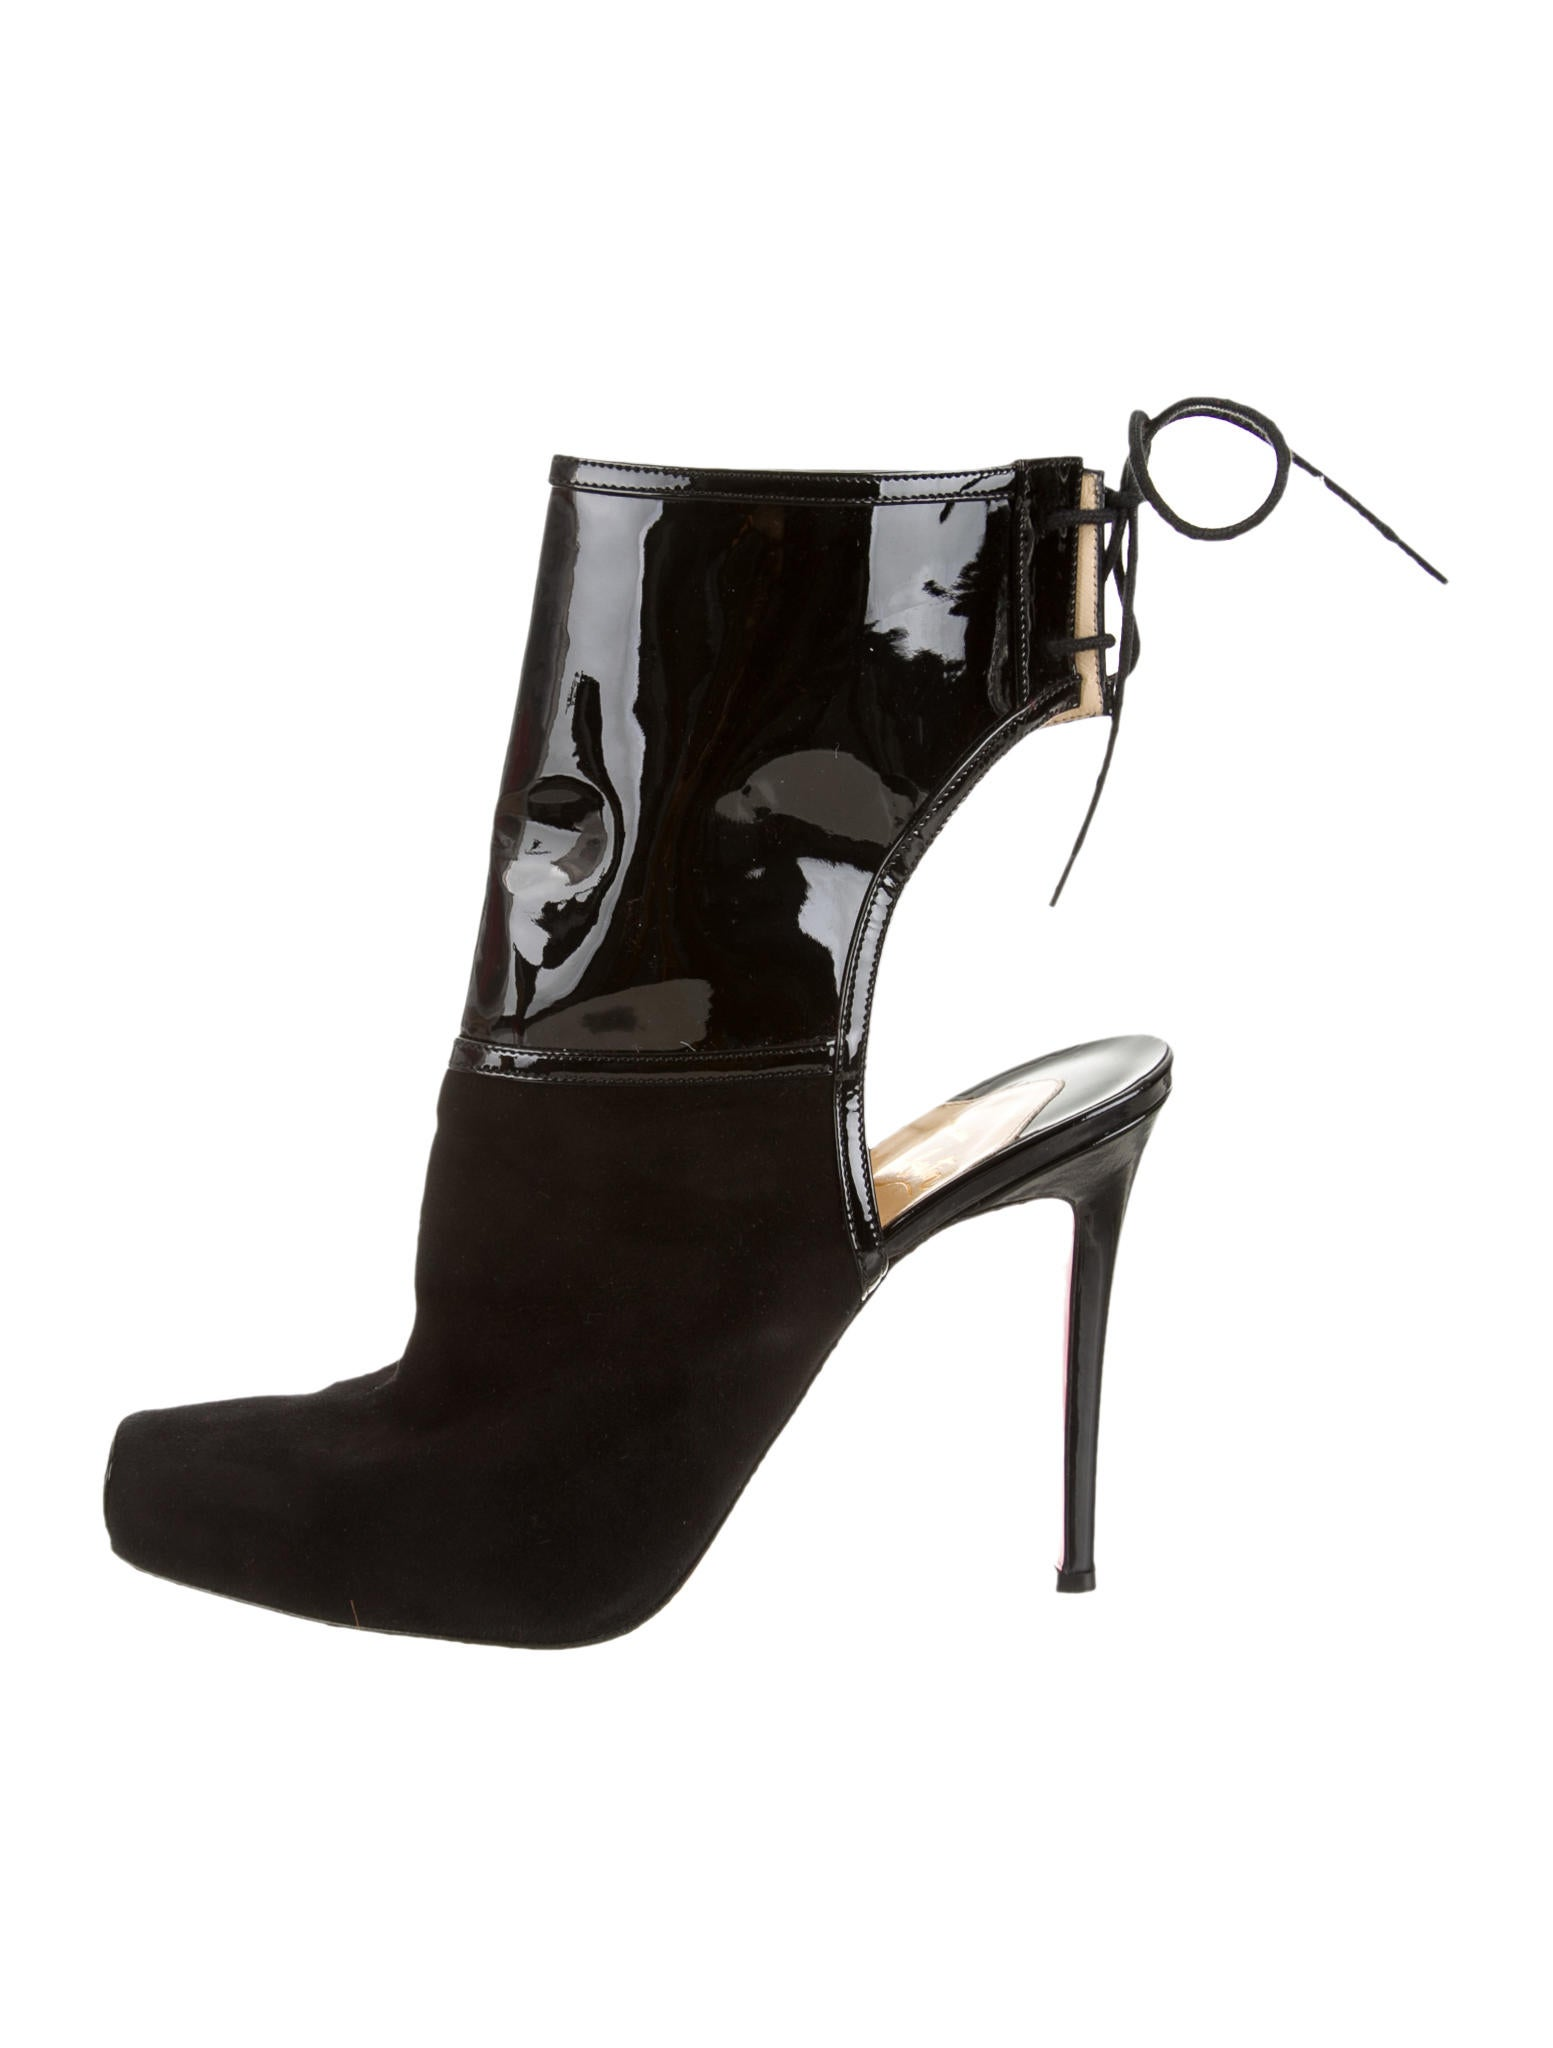 christian louboutin knockoffs cheap - christian louboutin square-toe ankle boots Black suede | The ...